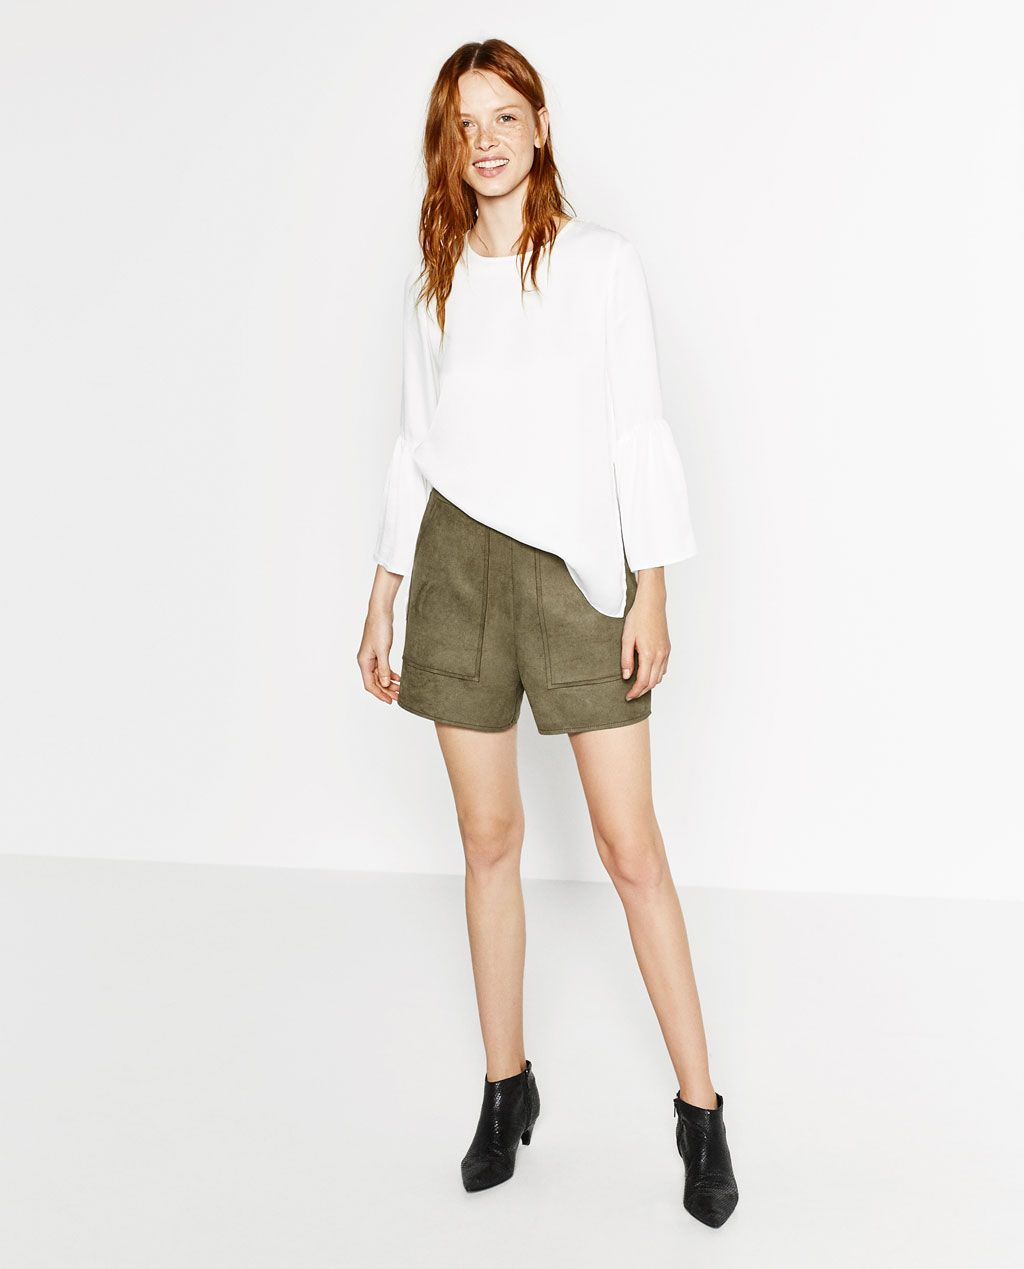 32f3b269f5 Image 1 of FAUX SUEDE-FEEL SHORTS from Zara | STITCH FIX | Shorts ...